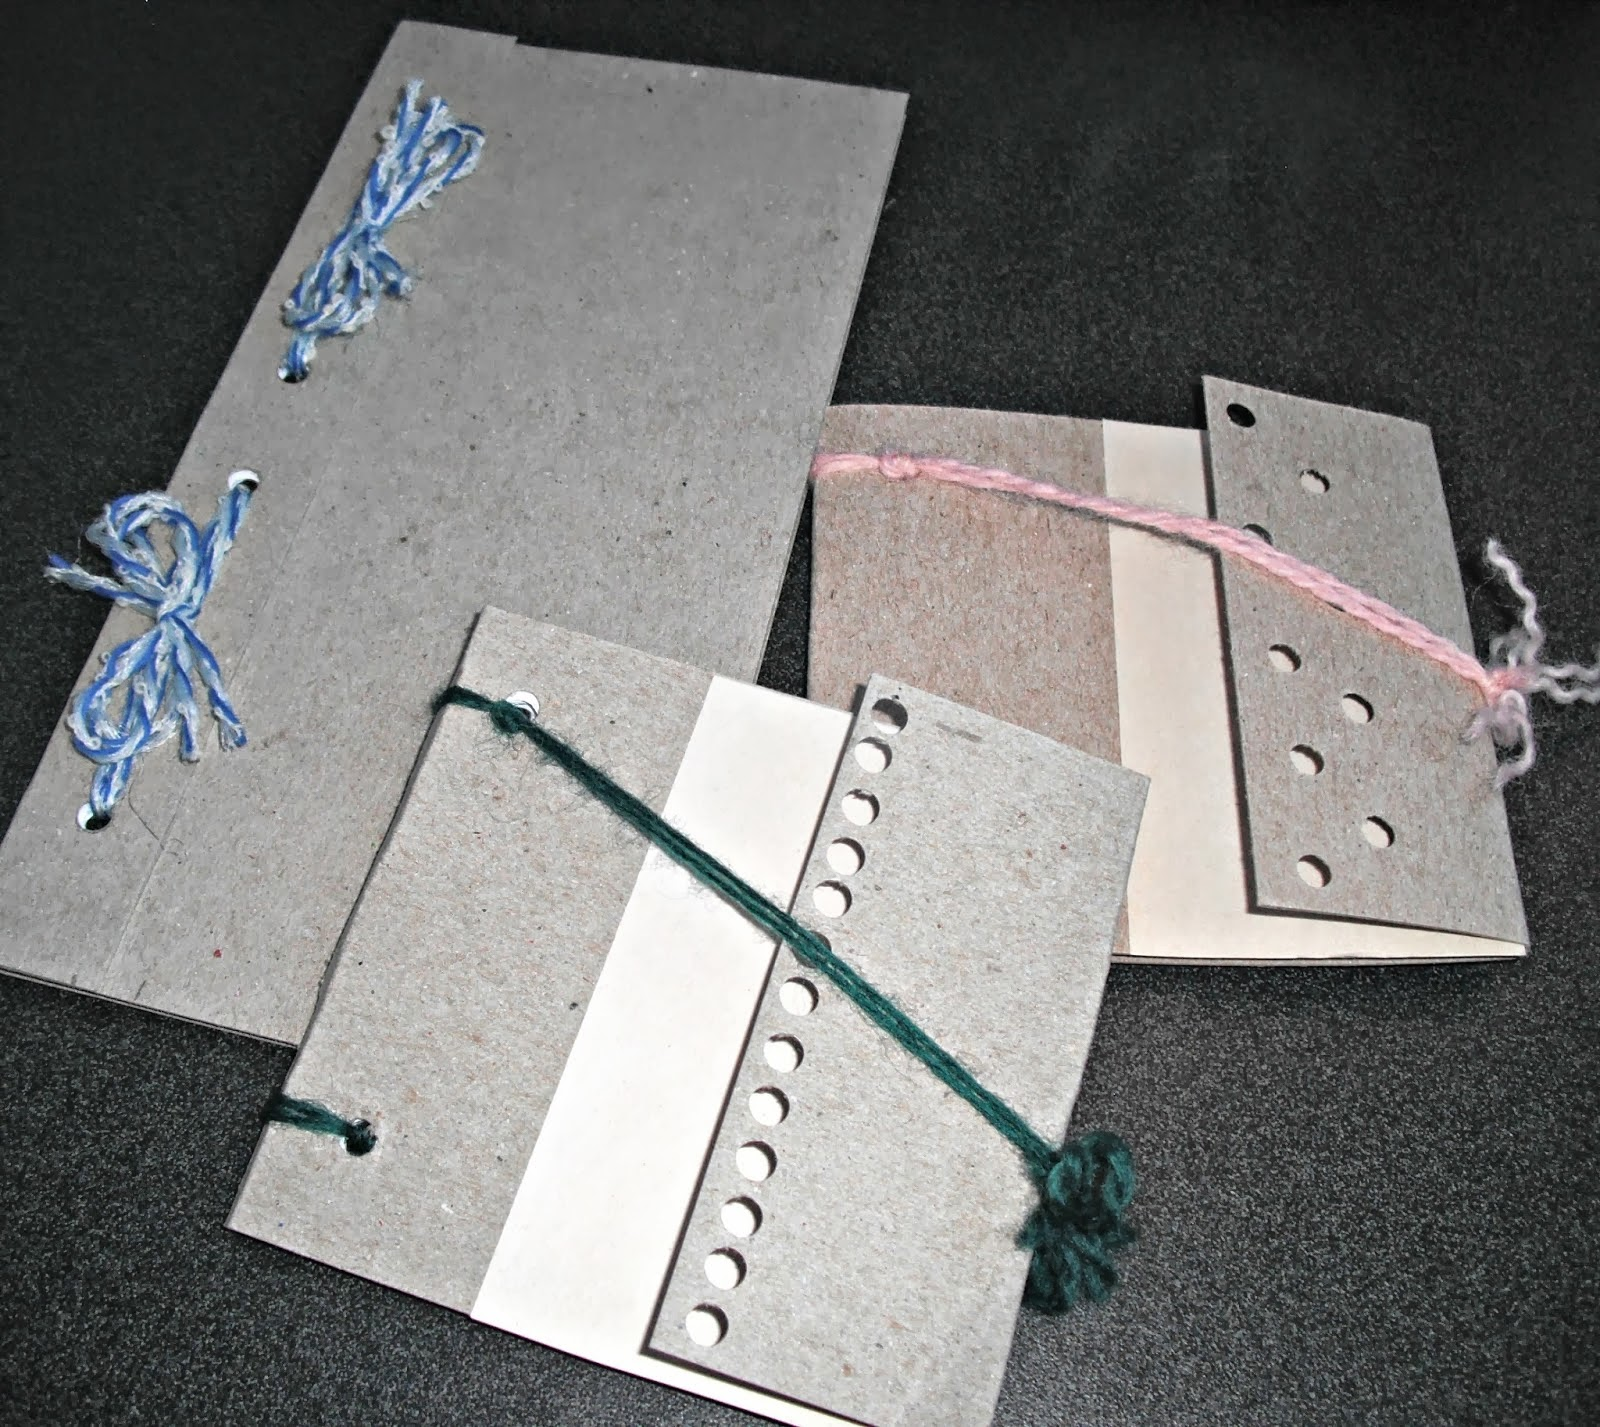 http://artsofeska.blogspot.com/2014/03/make-your-own-scrappy-notebooks-for-free.html